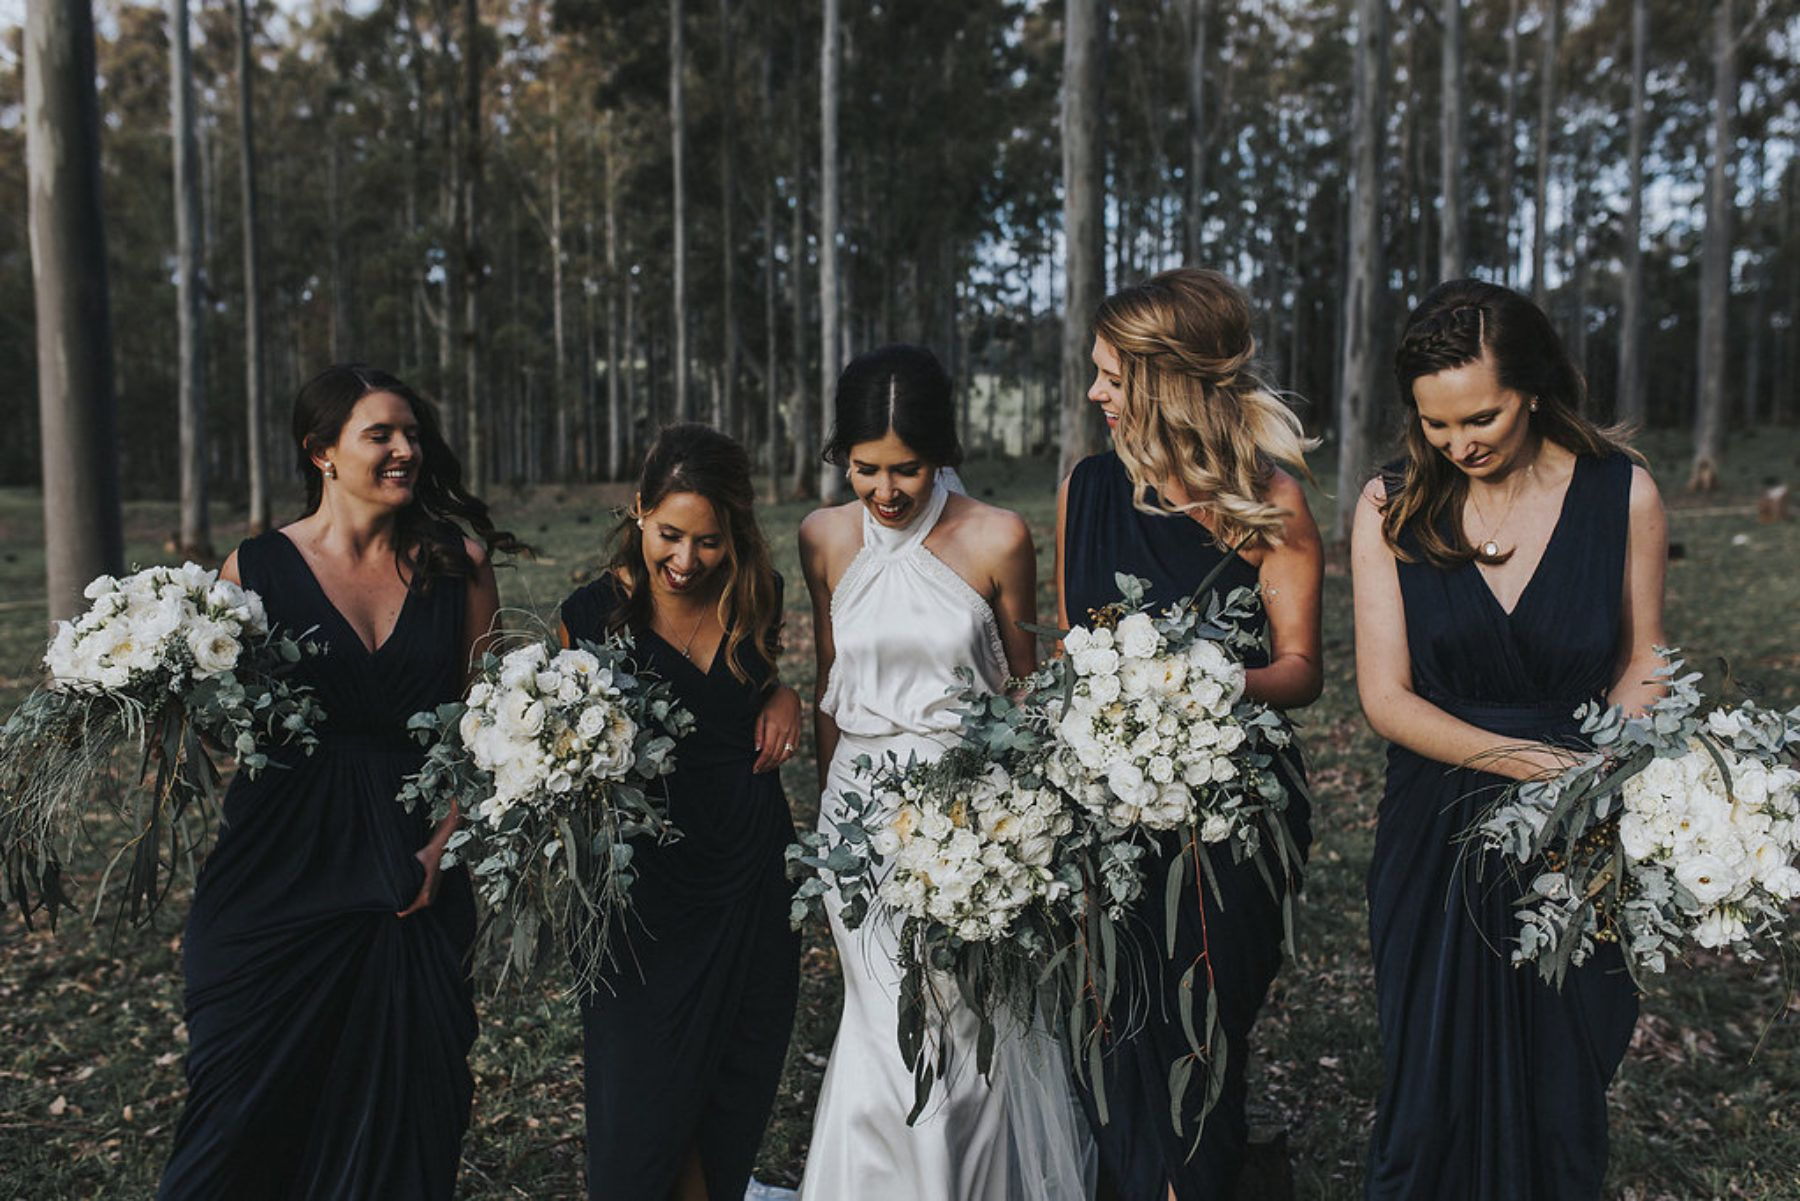 Navy bridesmaids with green and white bouquets weddings colors